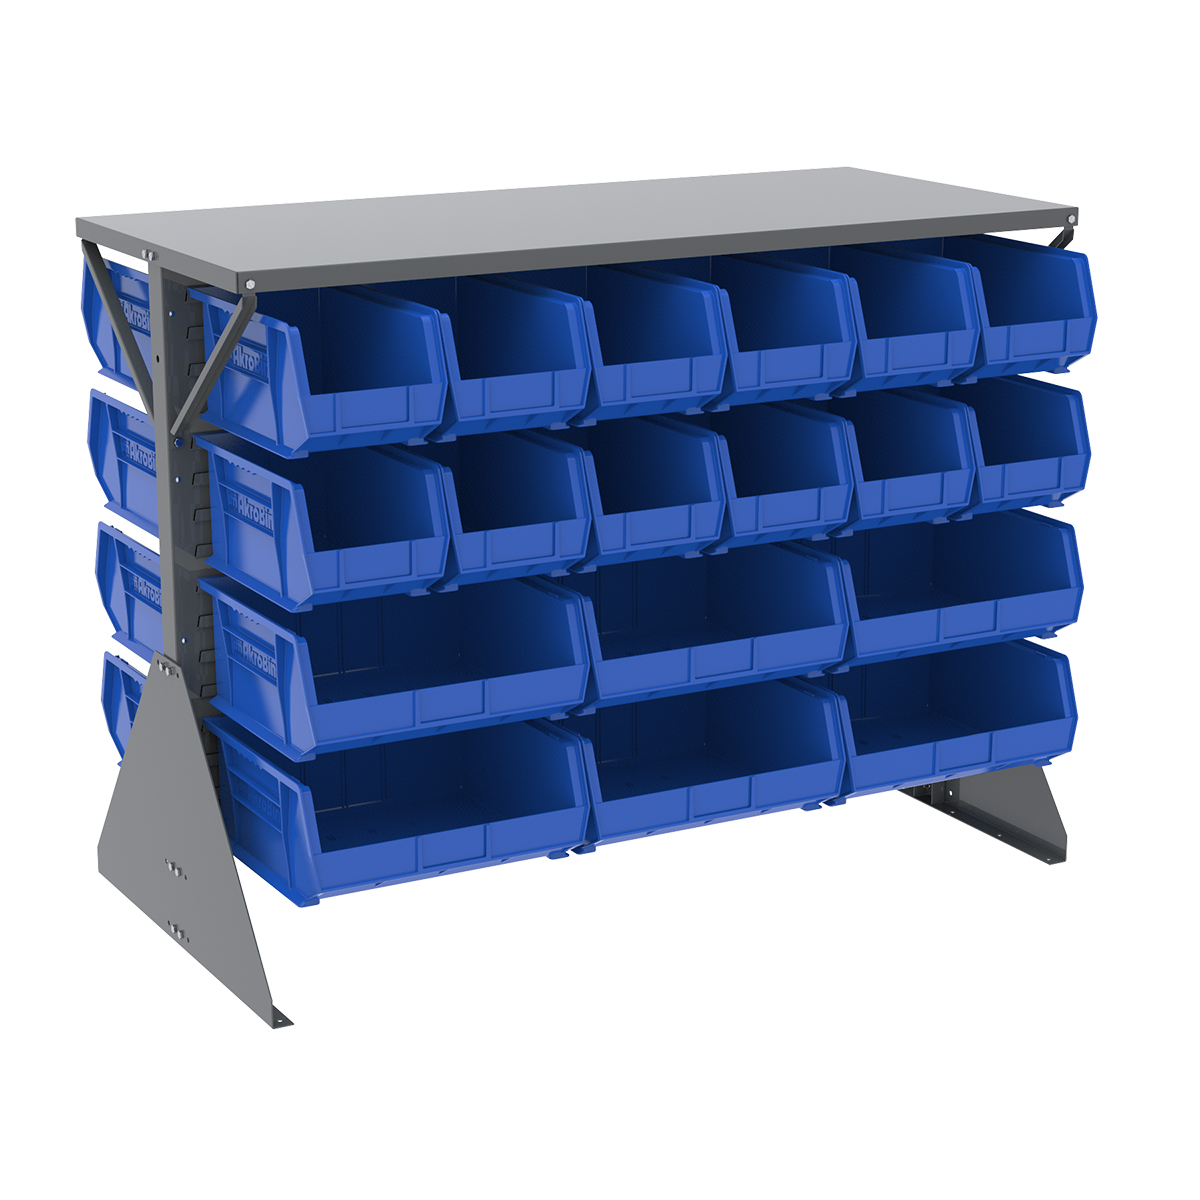 Item DISCONTINUED by Manufacturer.  Low Profile Floor Rack, 2-Sided, Shelf w/ 36 AkroBins, Gray/Blue (30606GYASSTB).  This item sold in carton quantities of 1.